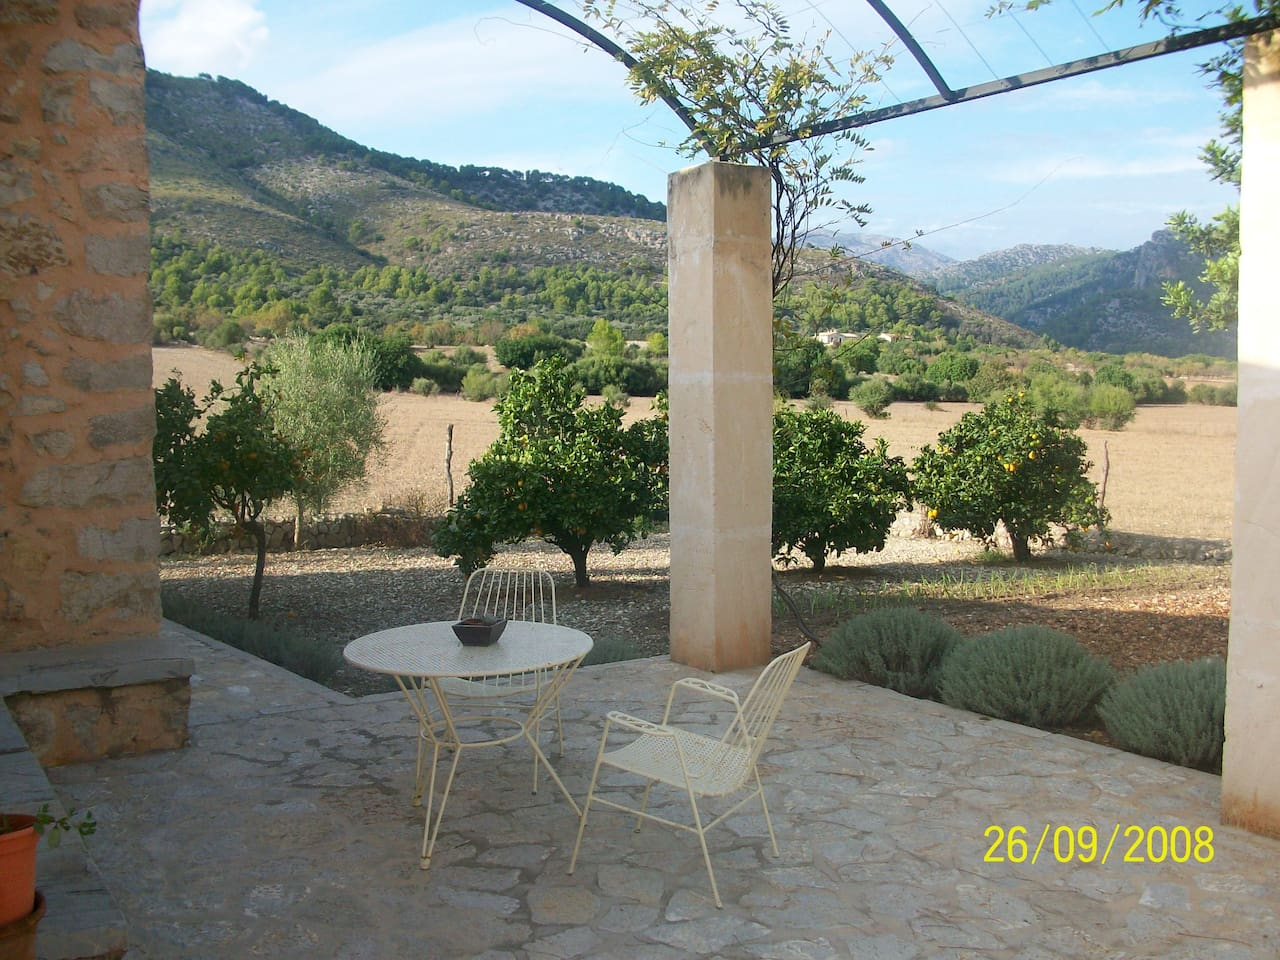 View from the house towards Puig Tomir